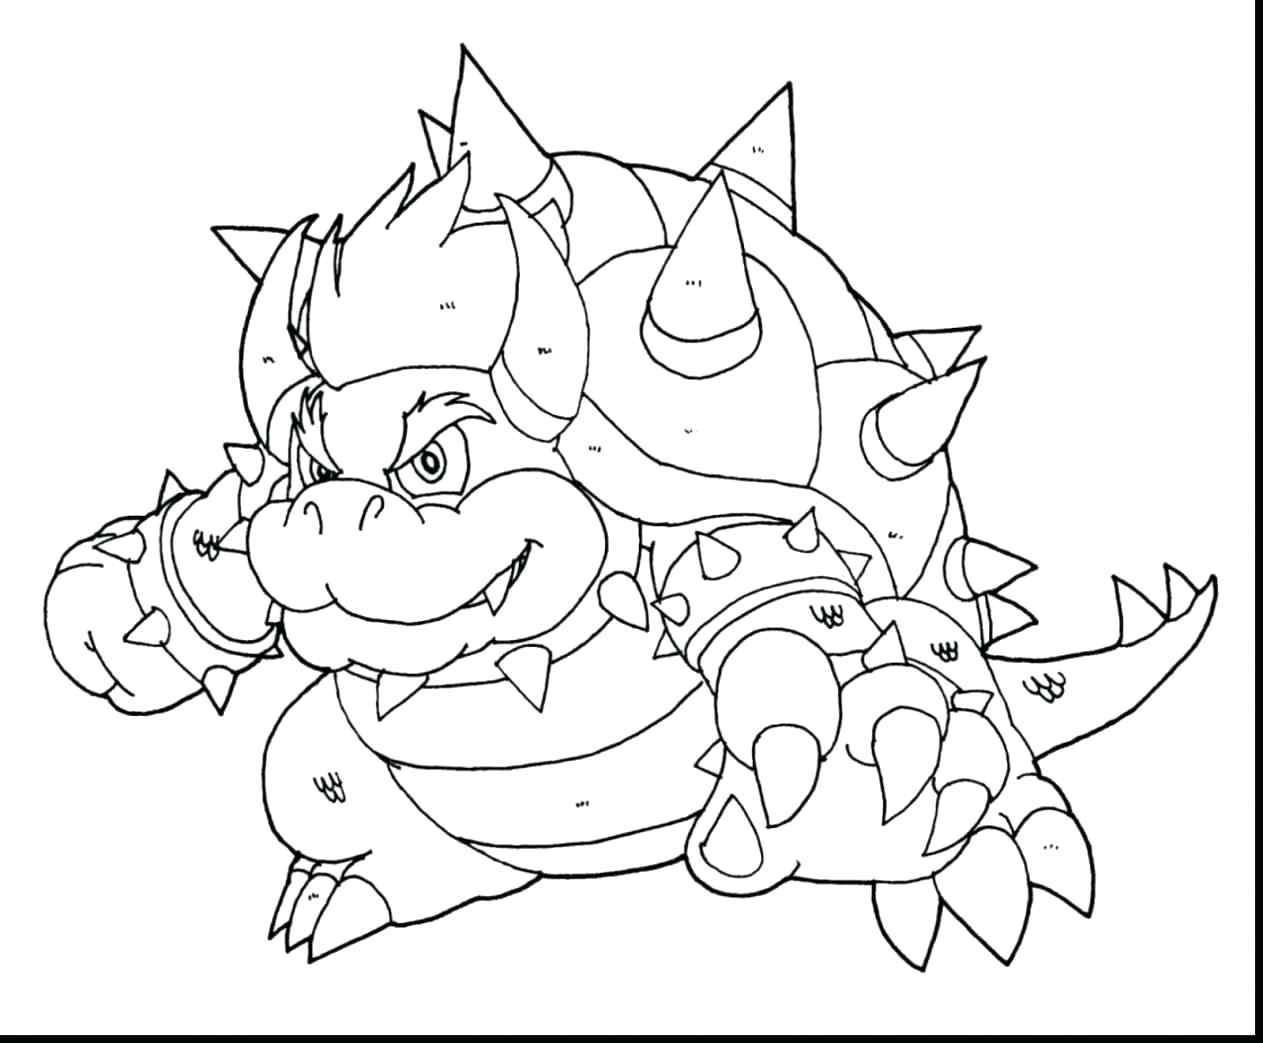 mario 3d world coloring pages mario 3d world coloring pages at getdrawings free download pages mario world coloring 3d